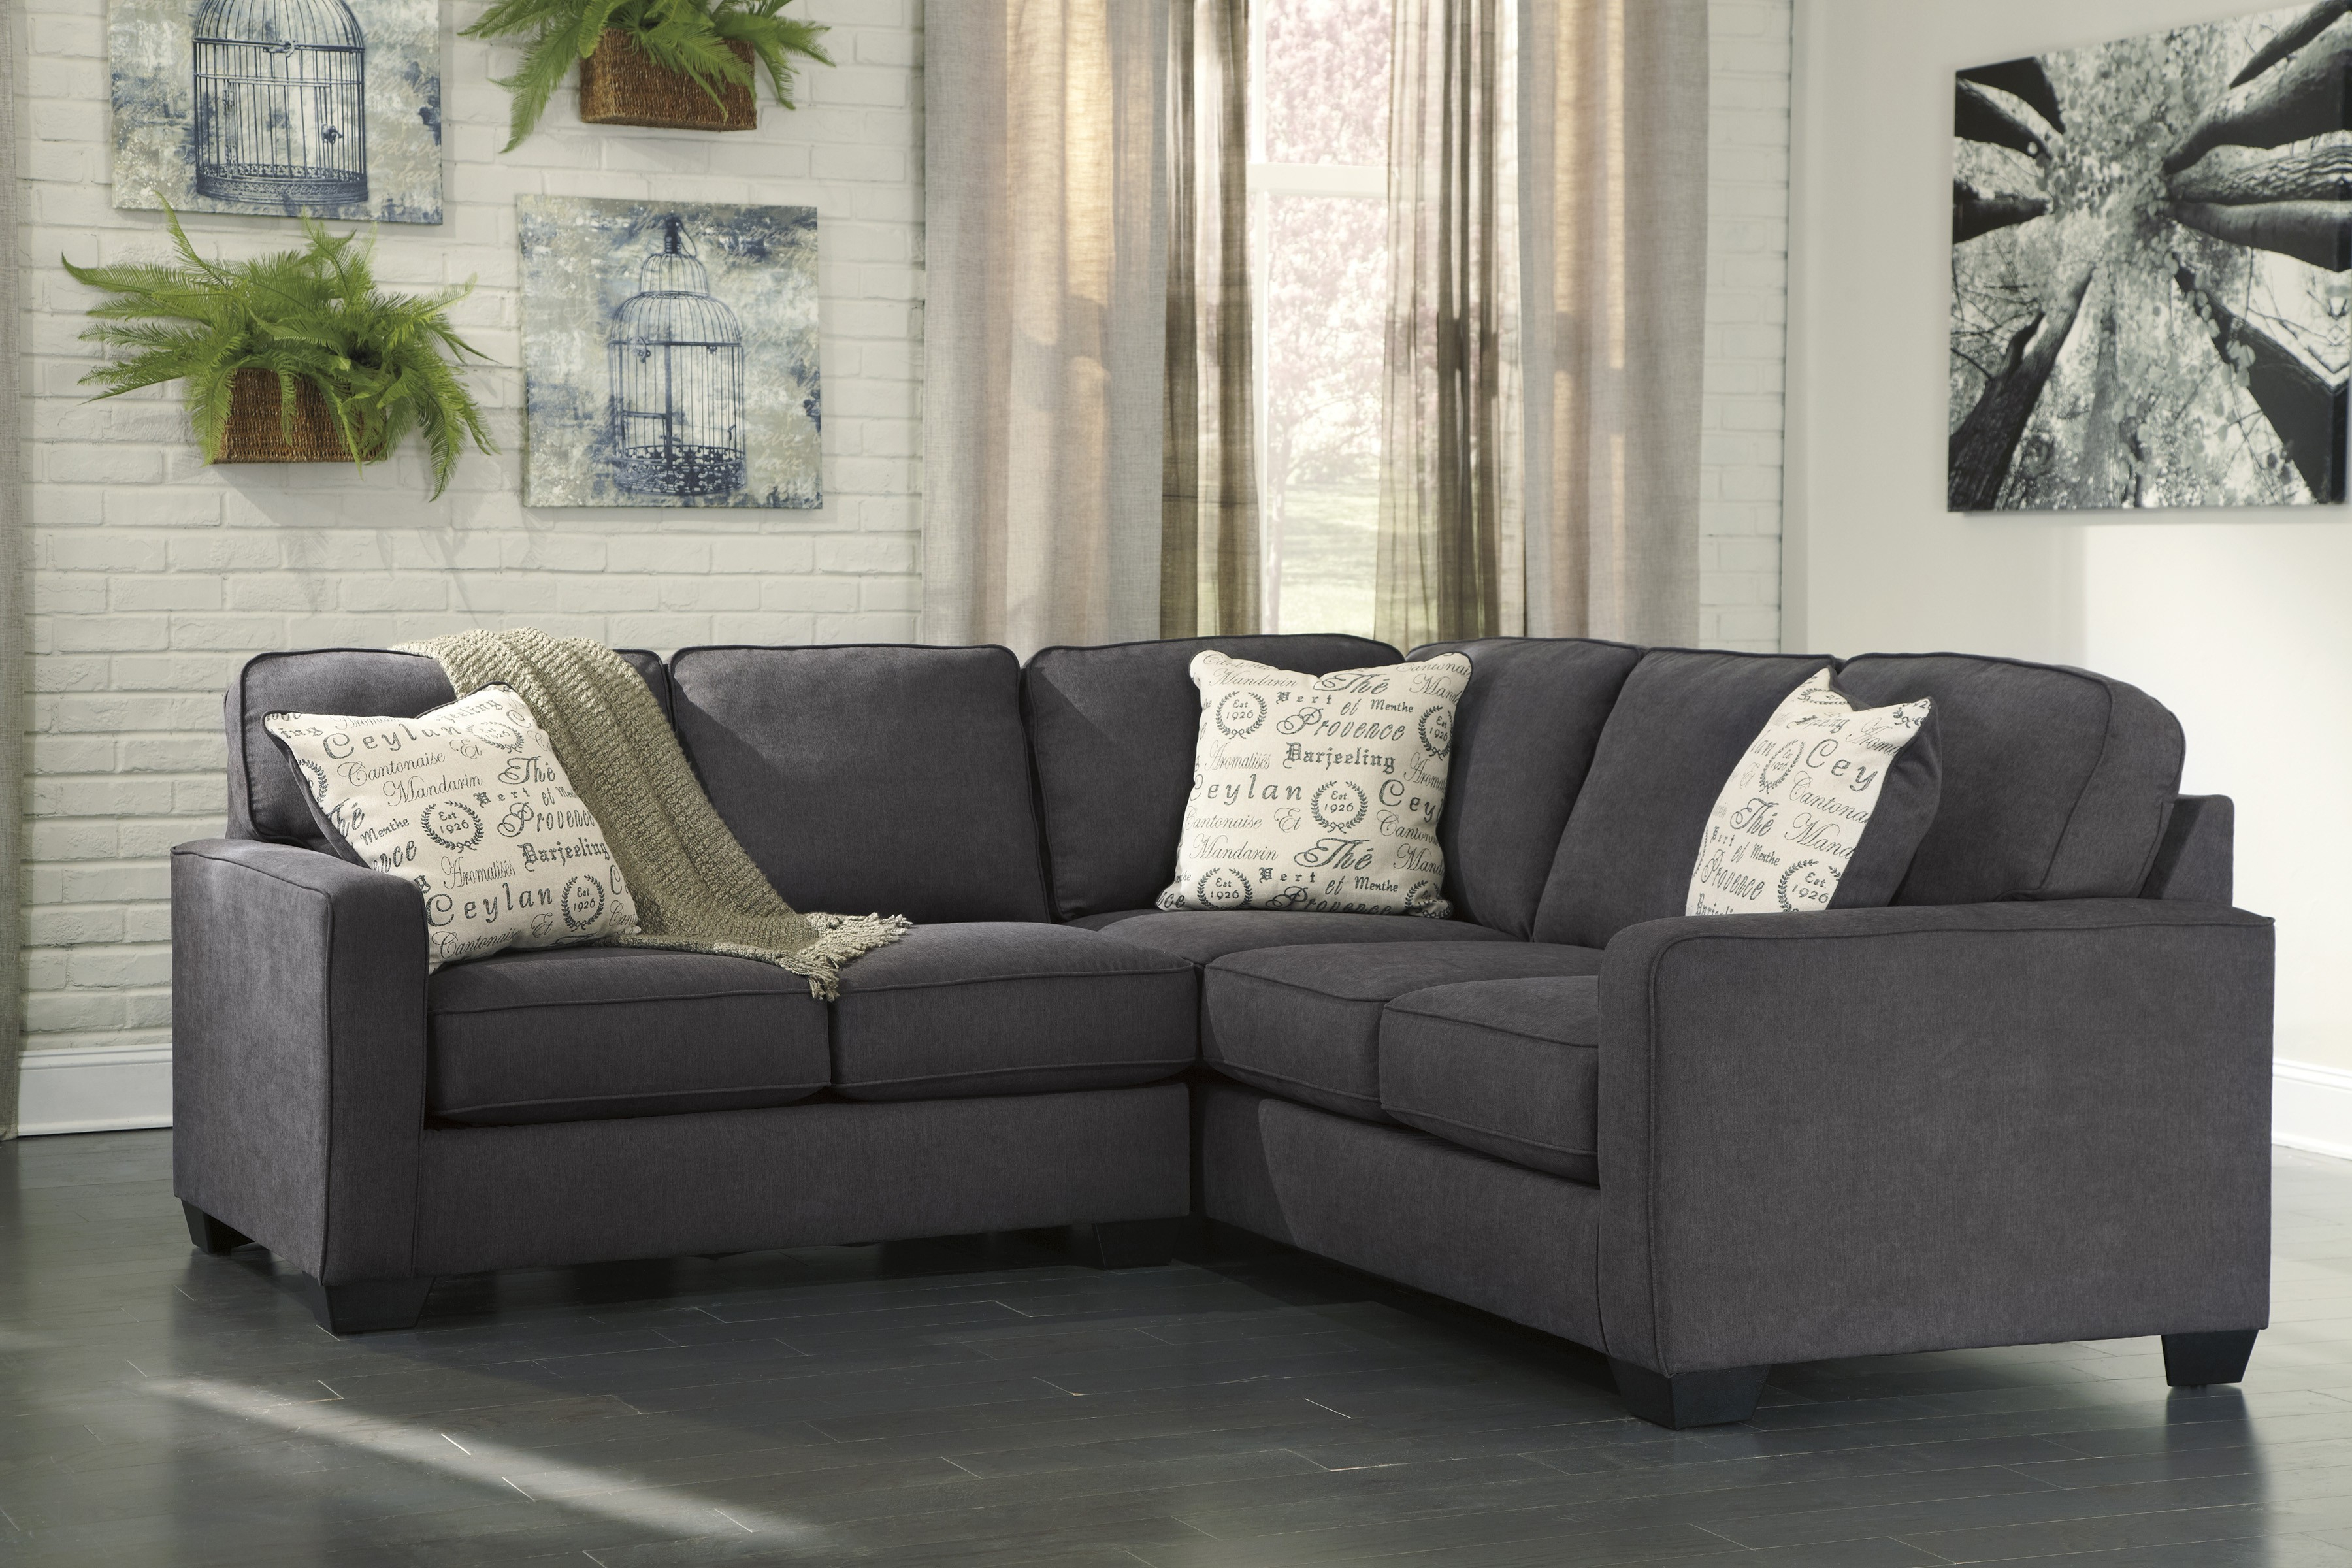 Fashionable Lovely 2 Piece Sectional Sofa – Buildsimplehome Intended For Evan 2 Piece Sectionals With Raf Chaise (View 7 of 20)